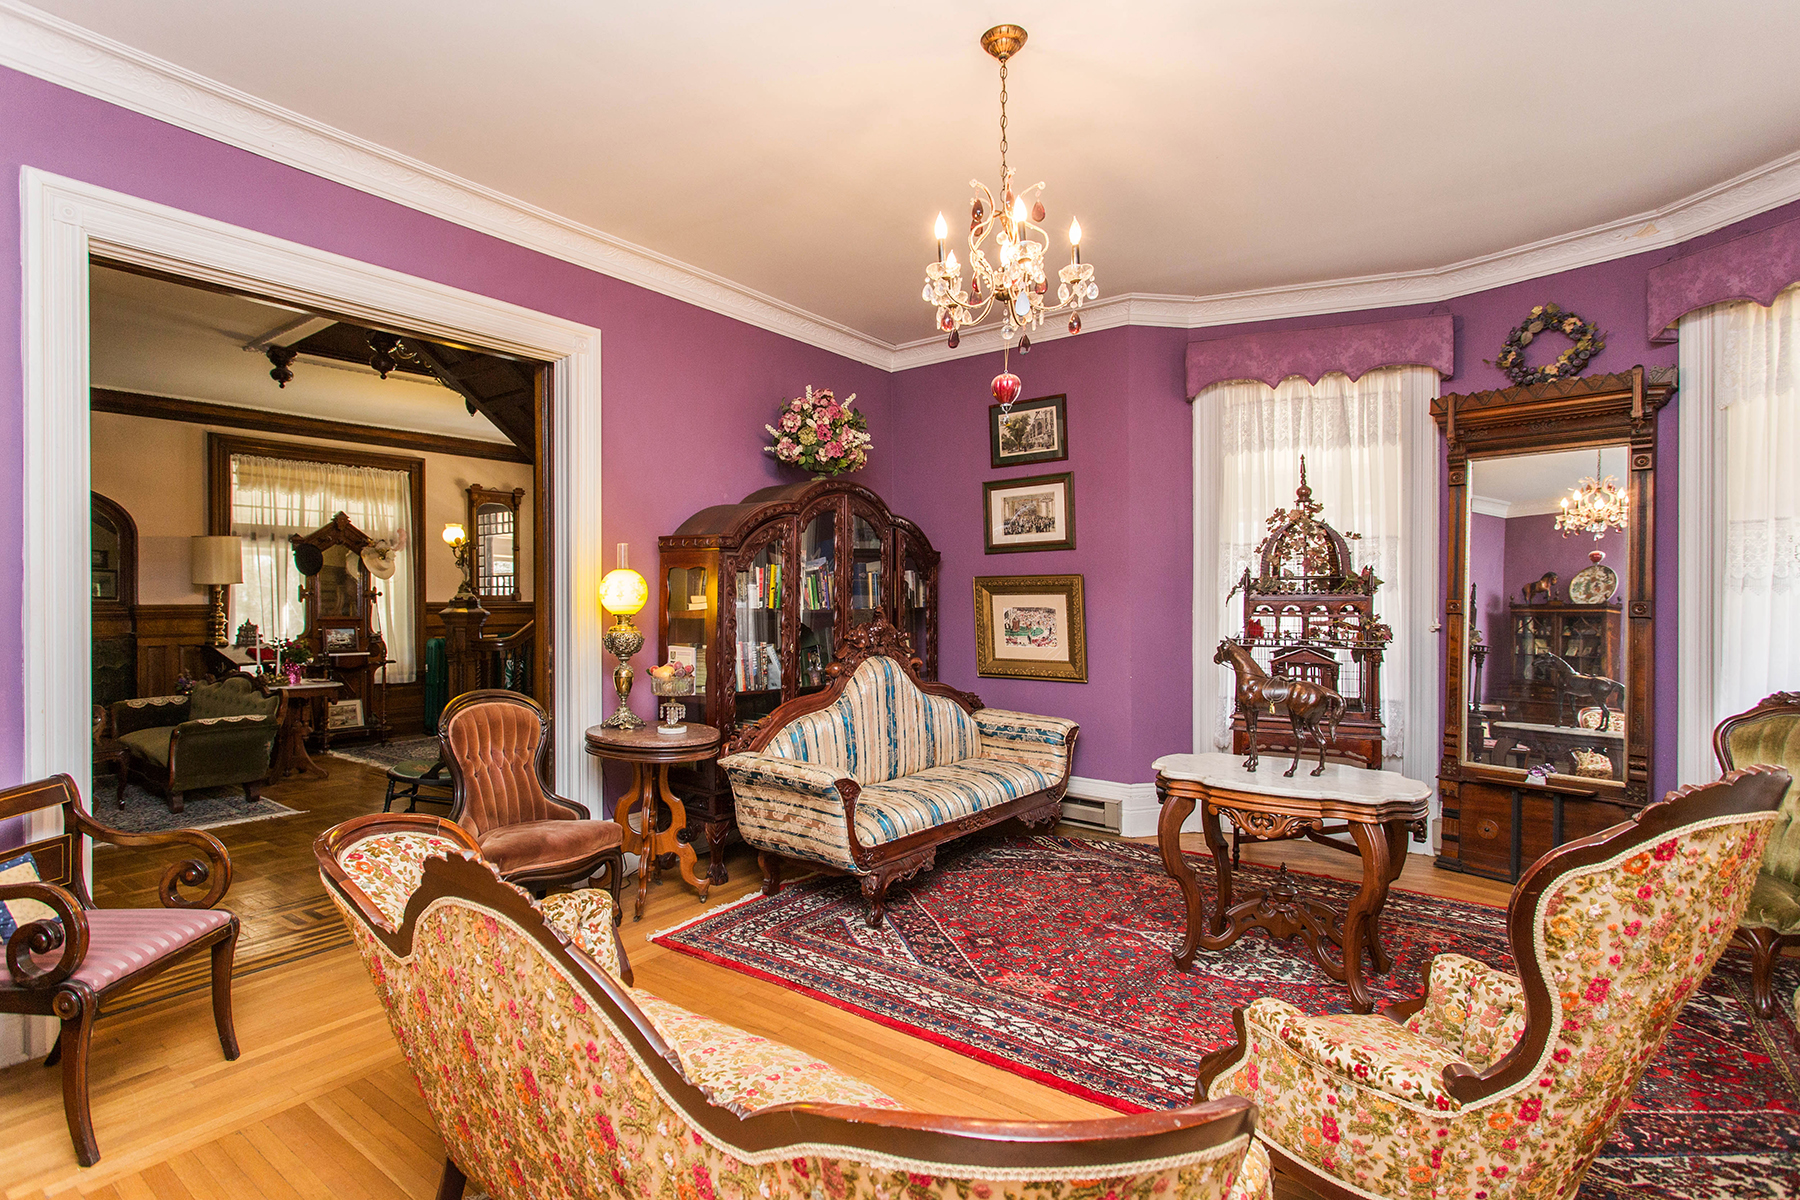 Additional photo for property listing at Exquisite Saratoga Trackside Victorian 203  Union Av 萨拉托贾斯普林斯, 纽约州 12866 美国